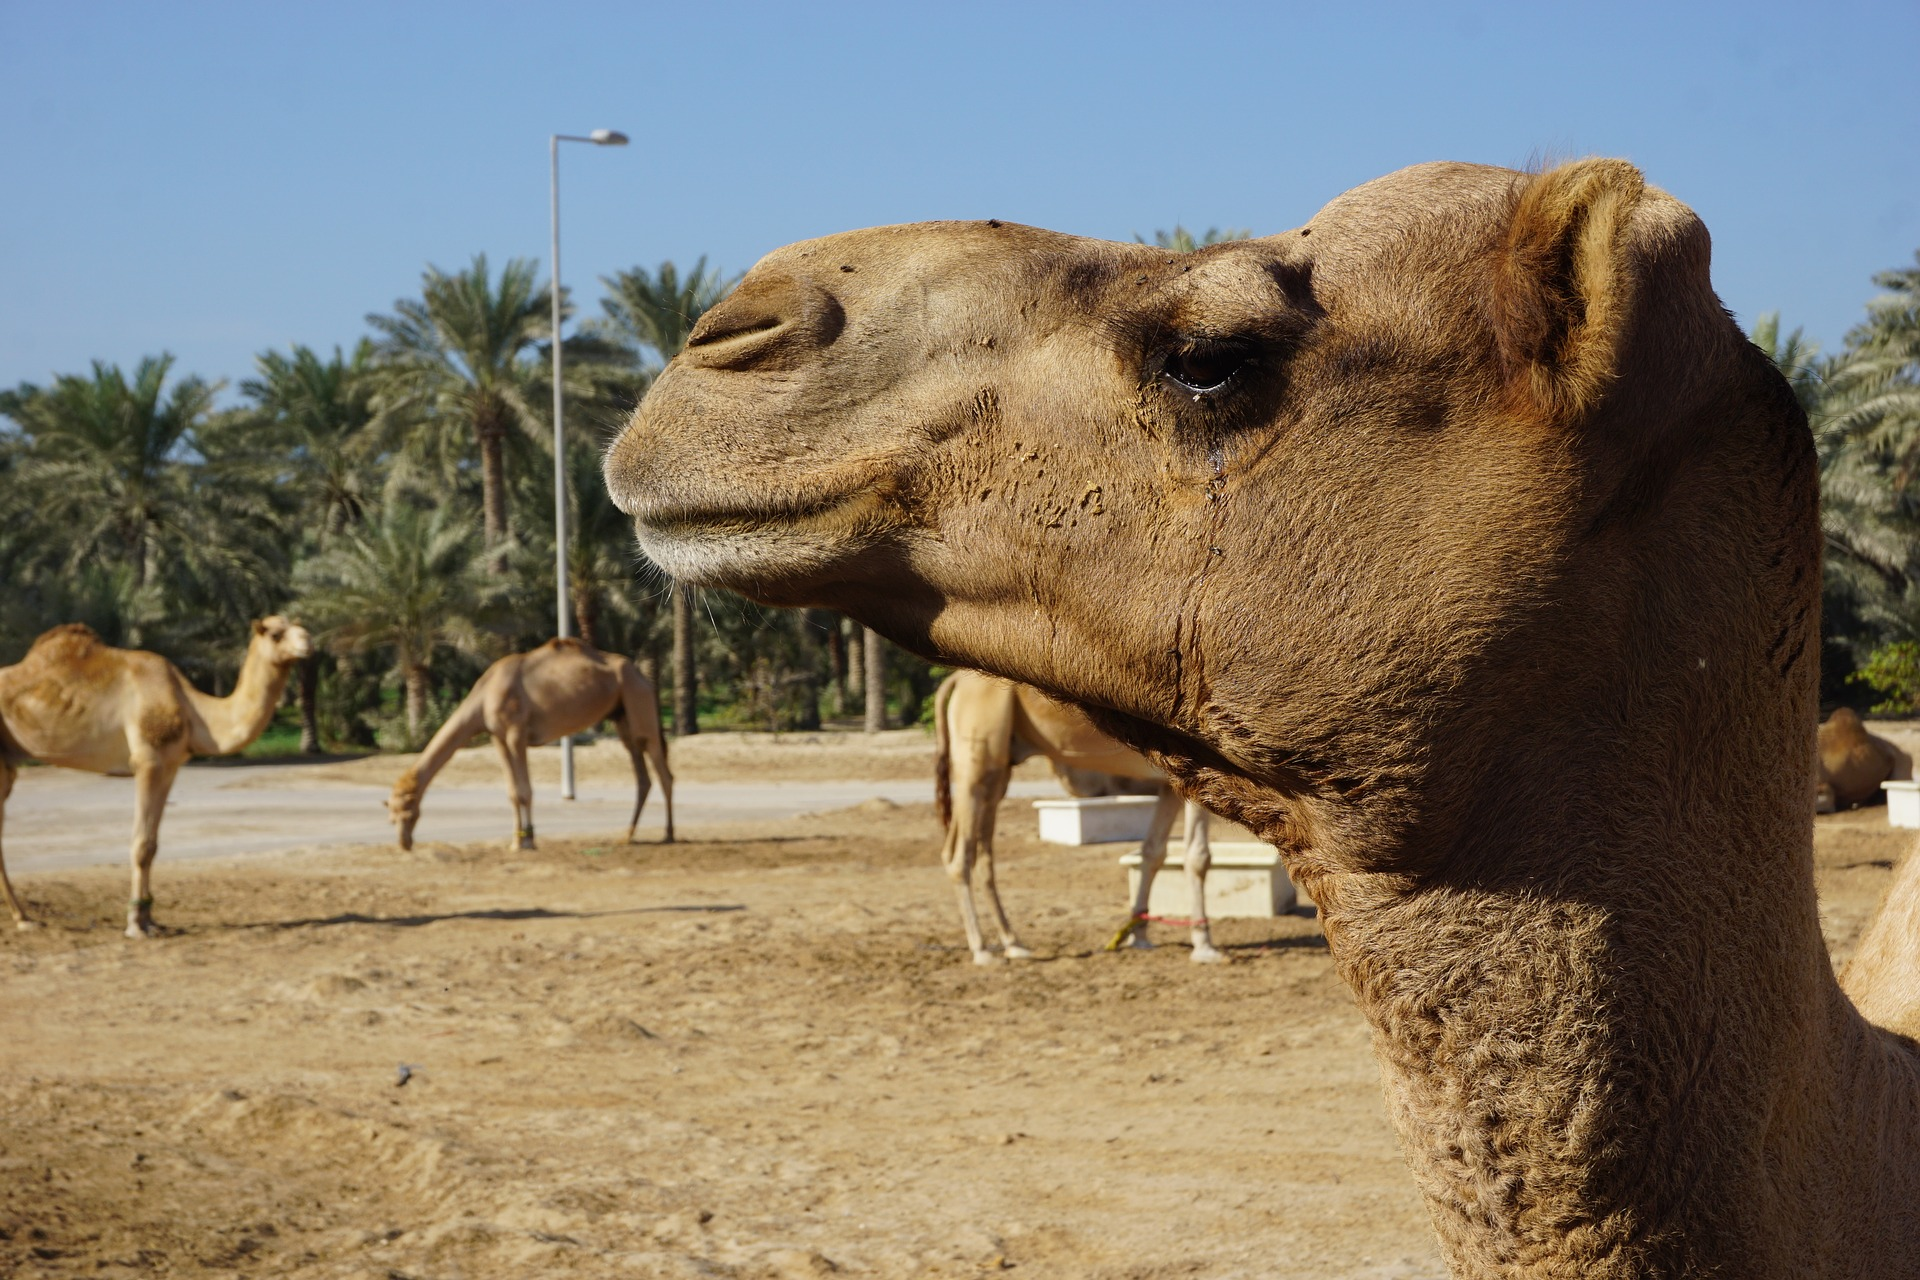 Close up picture of camels head with 3 camels and palm trees in the background